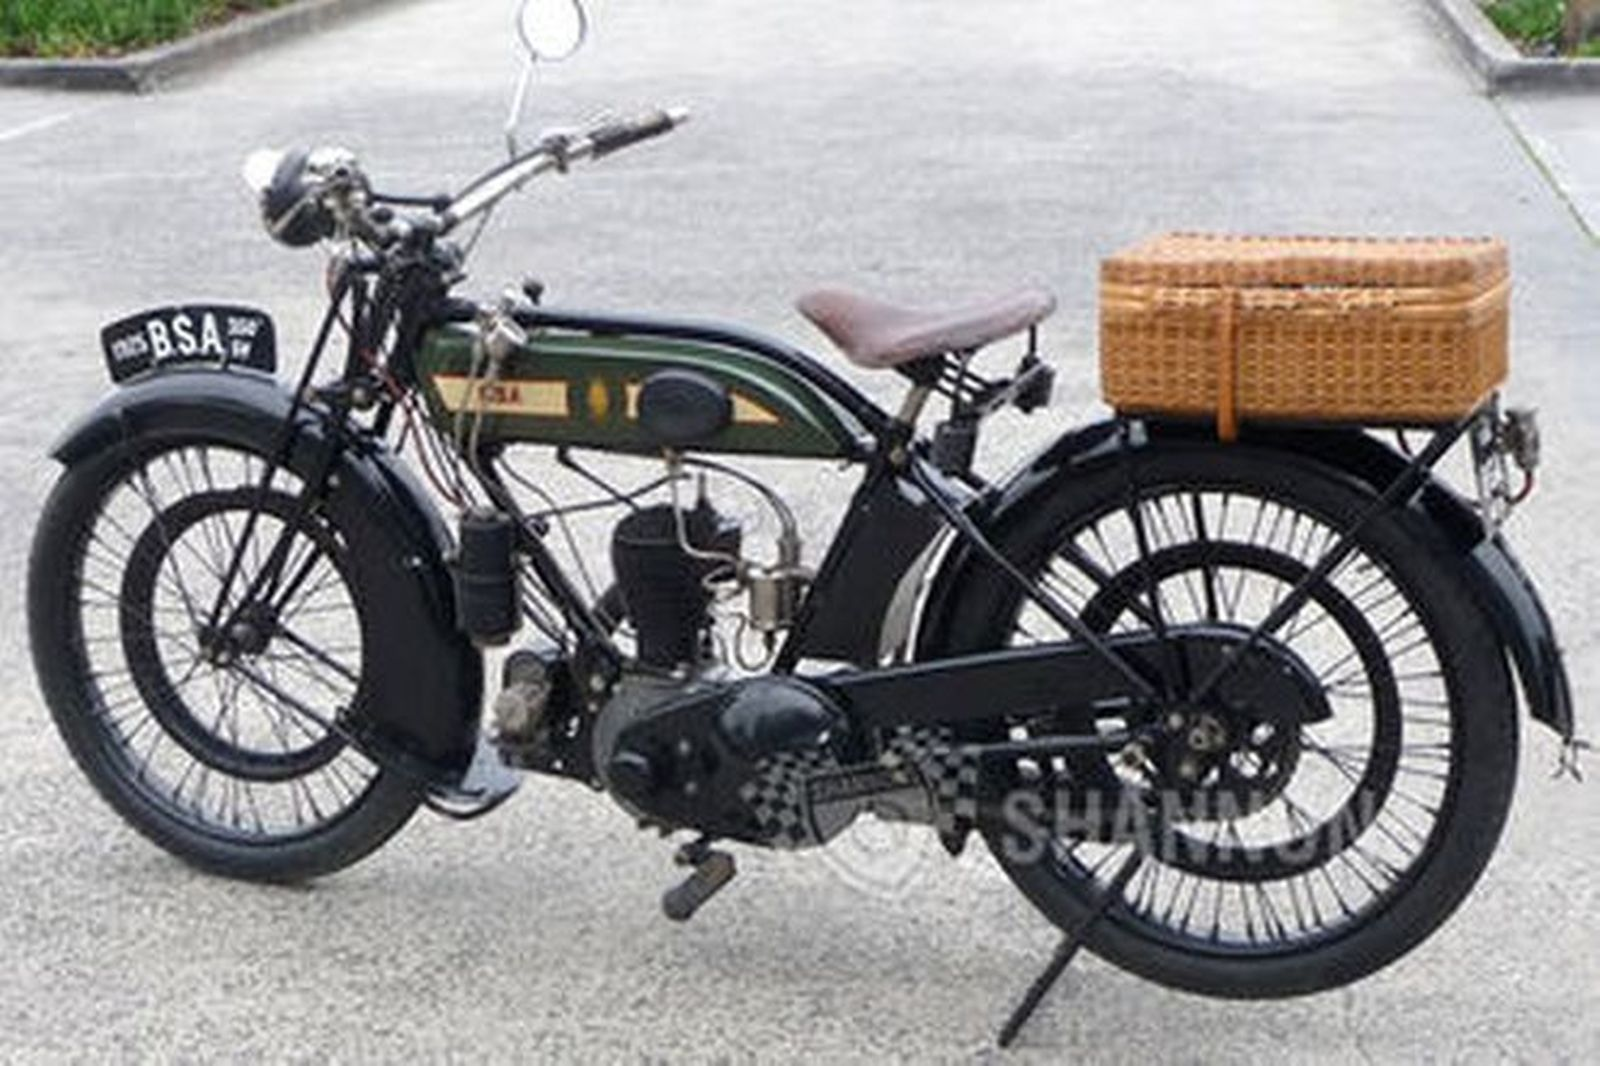 Sold bsa 350cc sv solo motorcycle auctions lot 7 shannons for Motor vehicle open on saturday